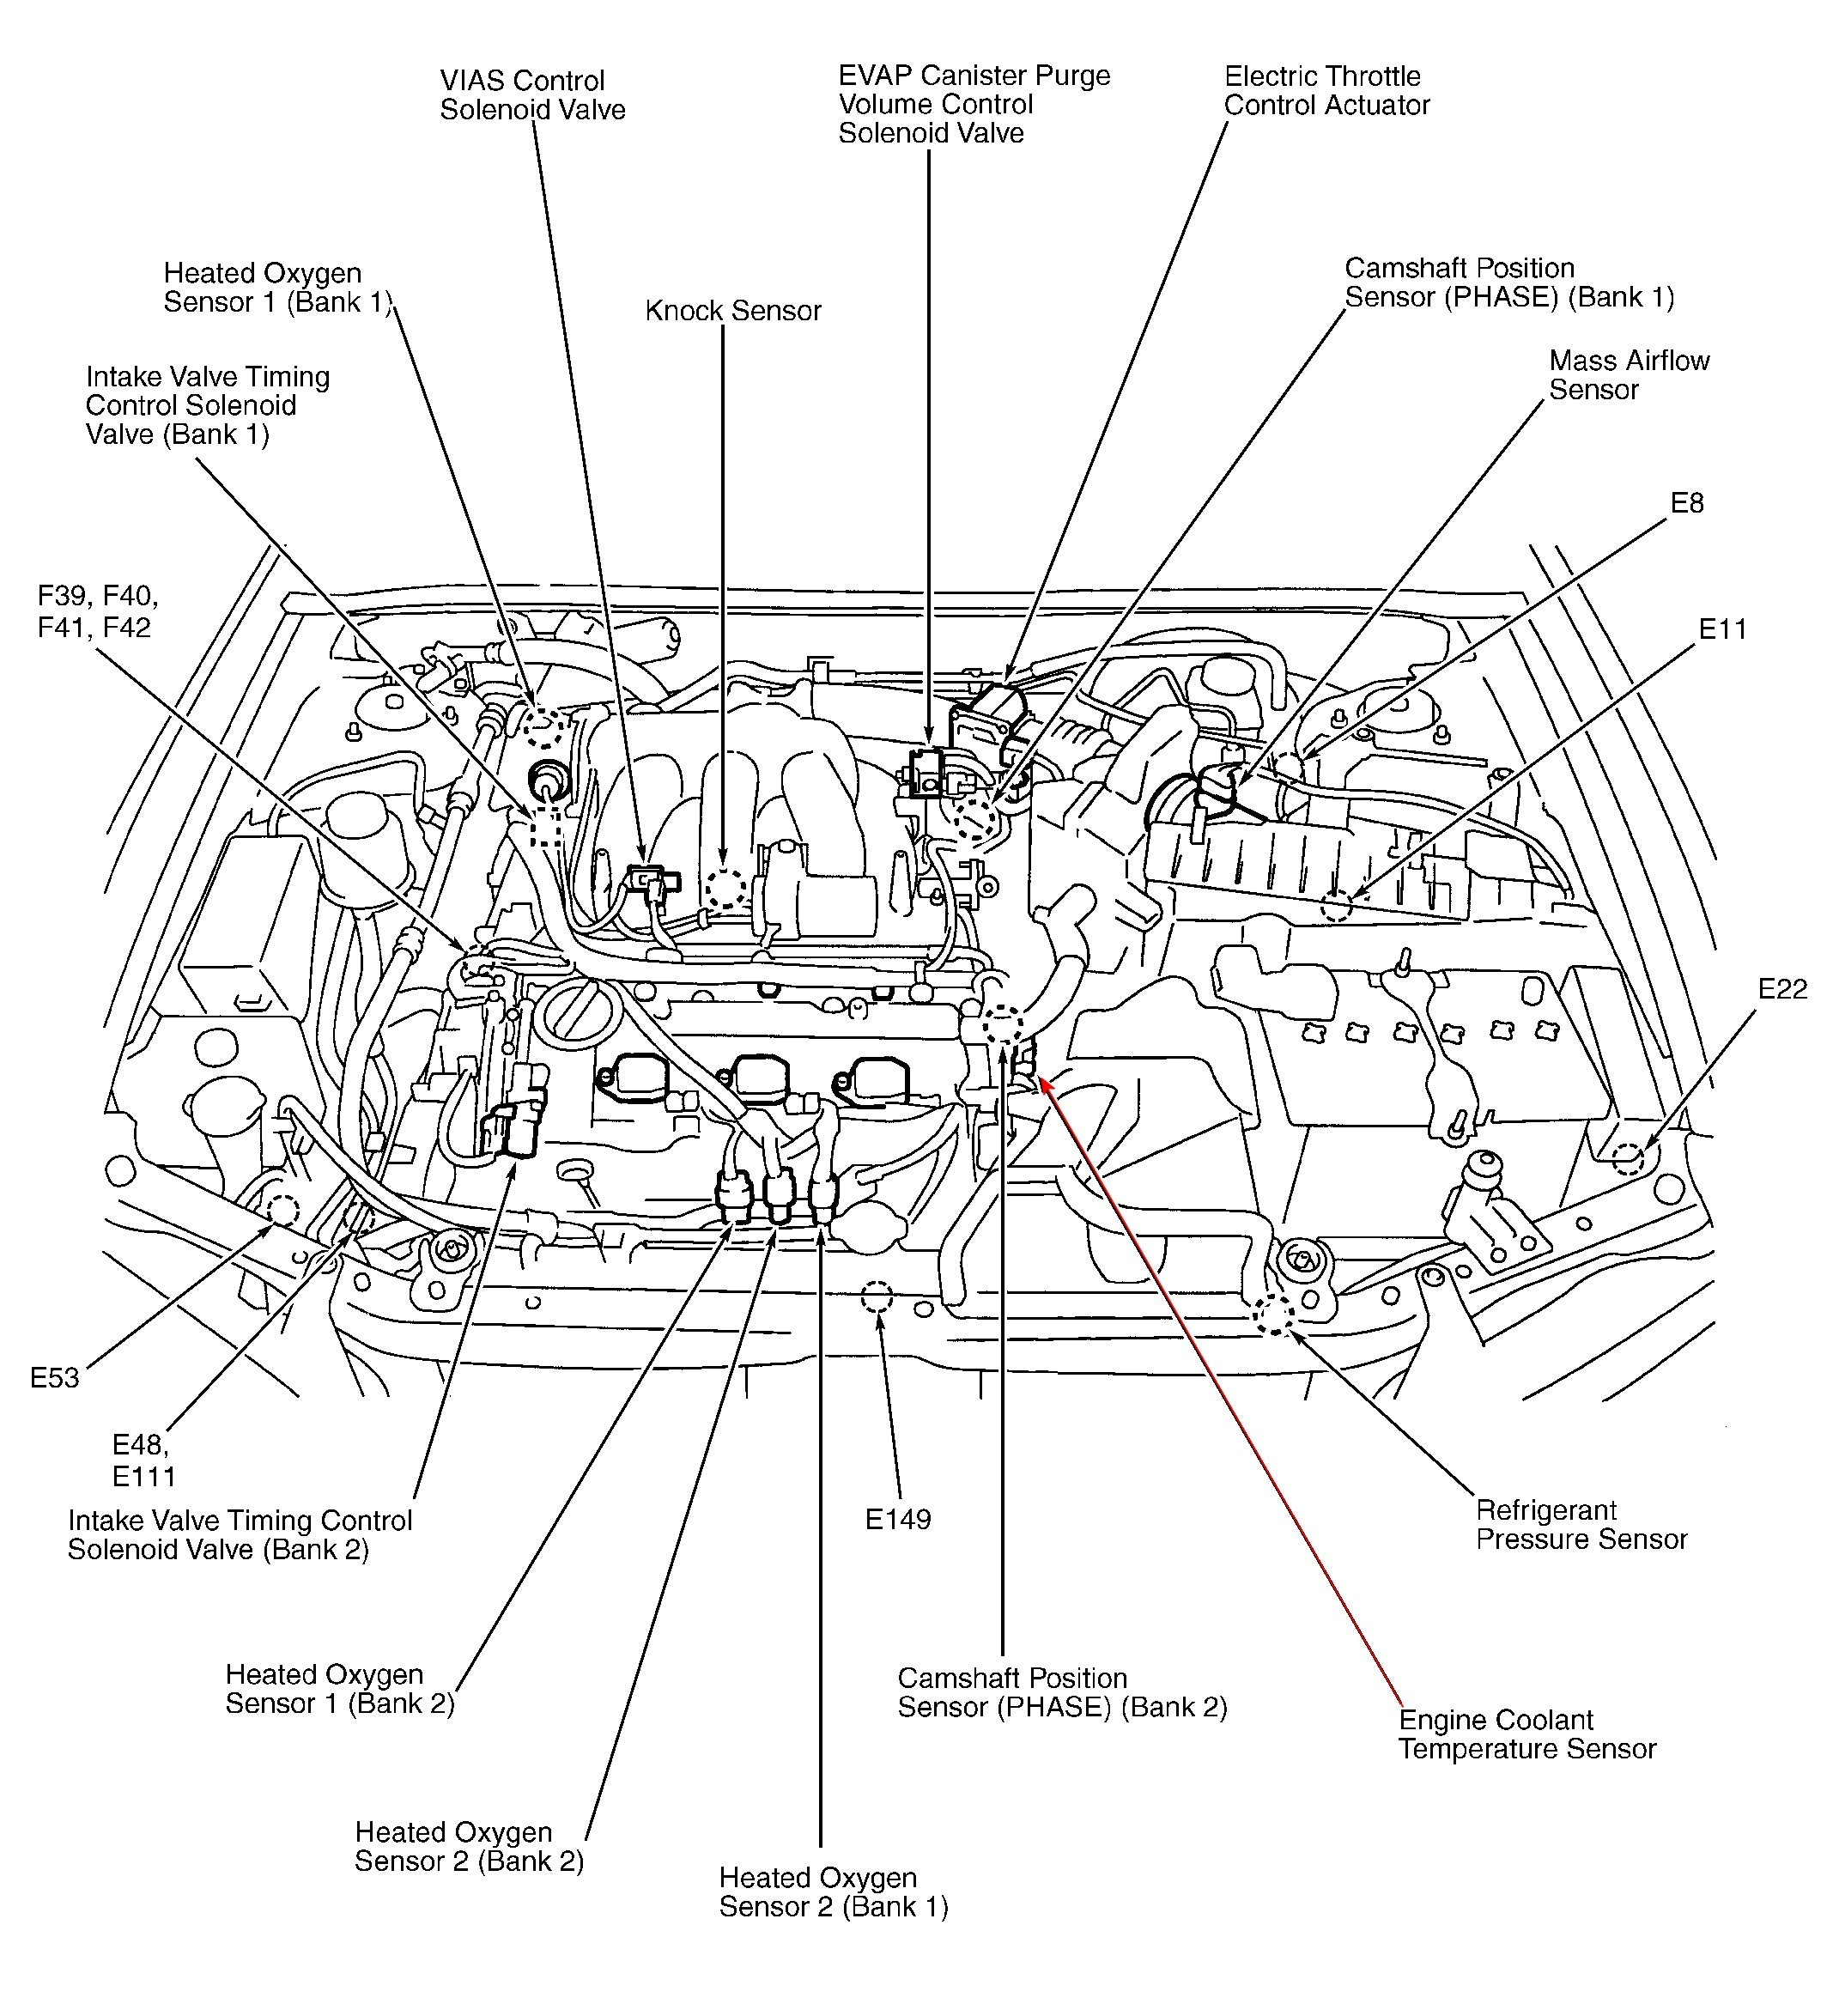 cf099 2008 dodge nitro fuse box diagram wiring resources 2007 chrysler town and country wiring diagram 2007 dodge nitro fuel pump wiring diagram #12